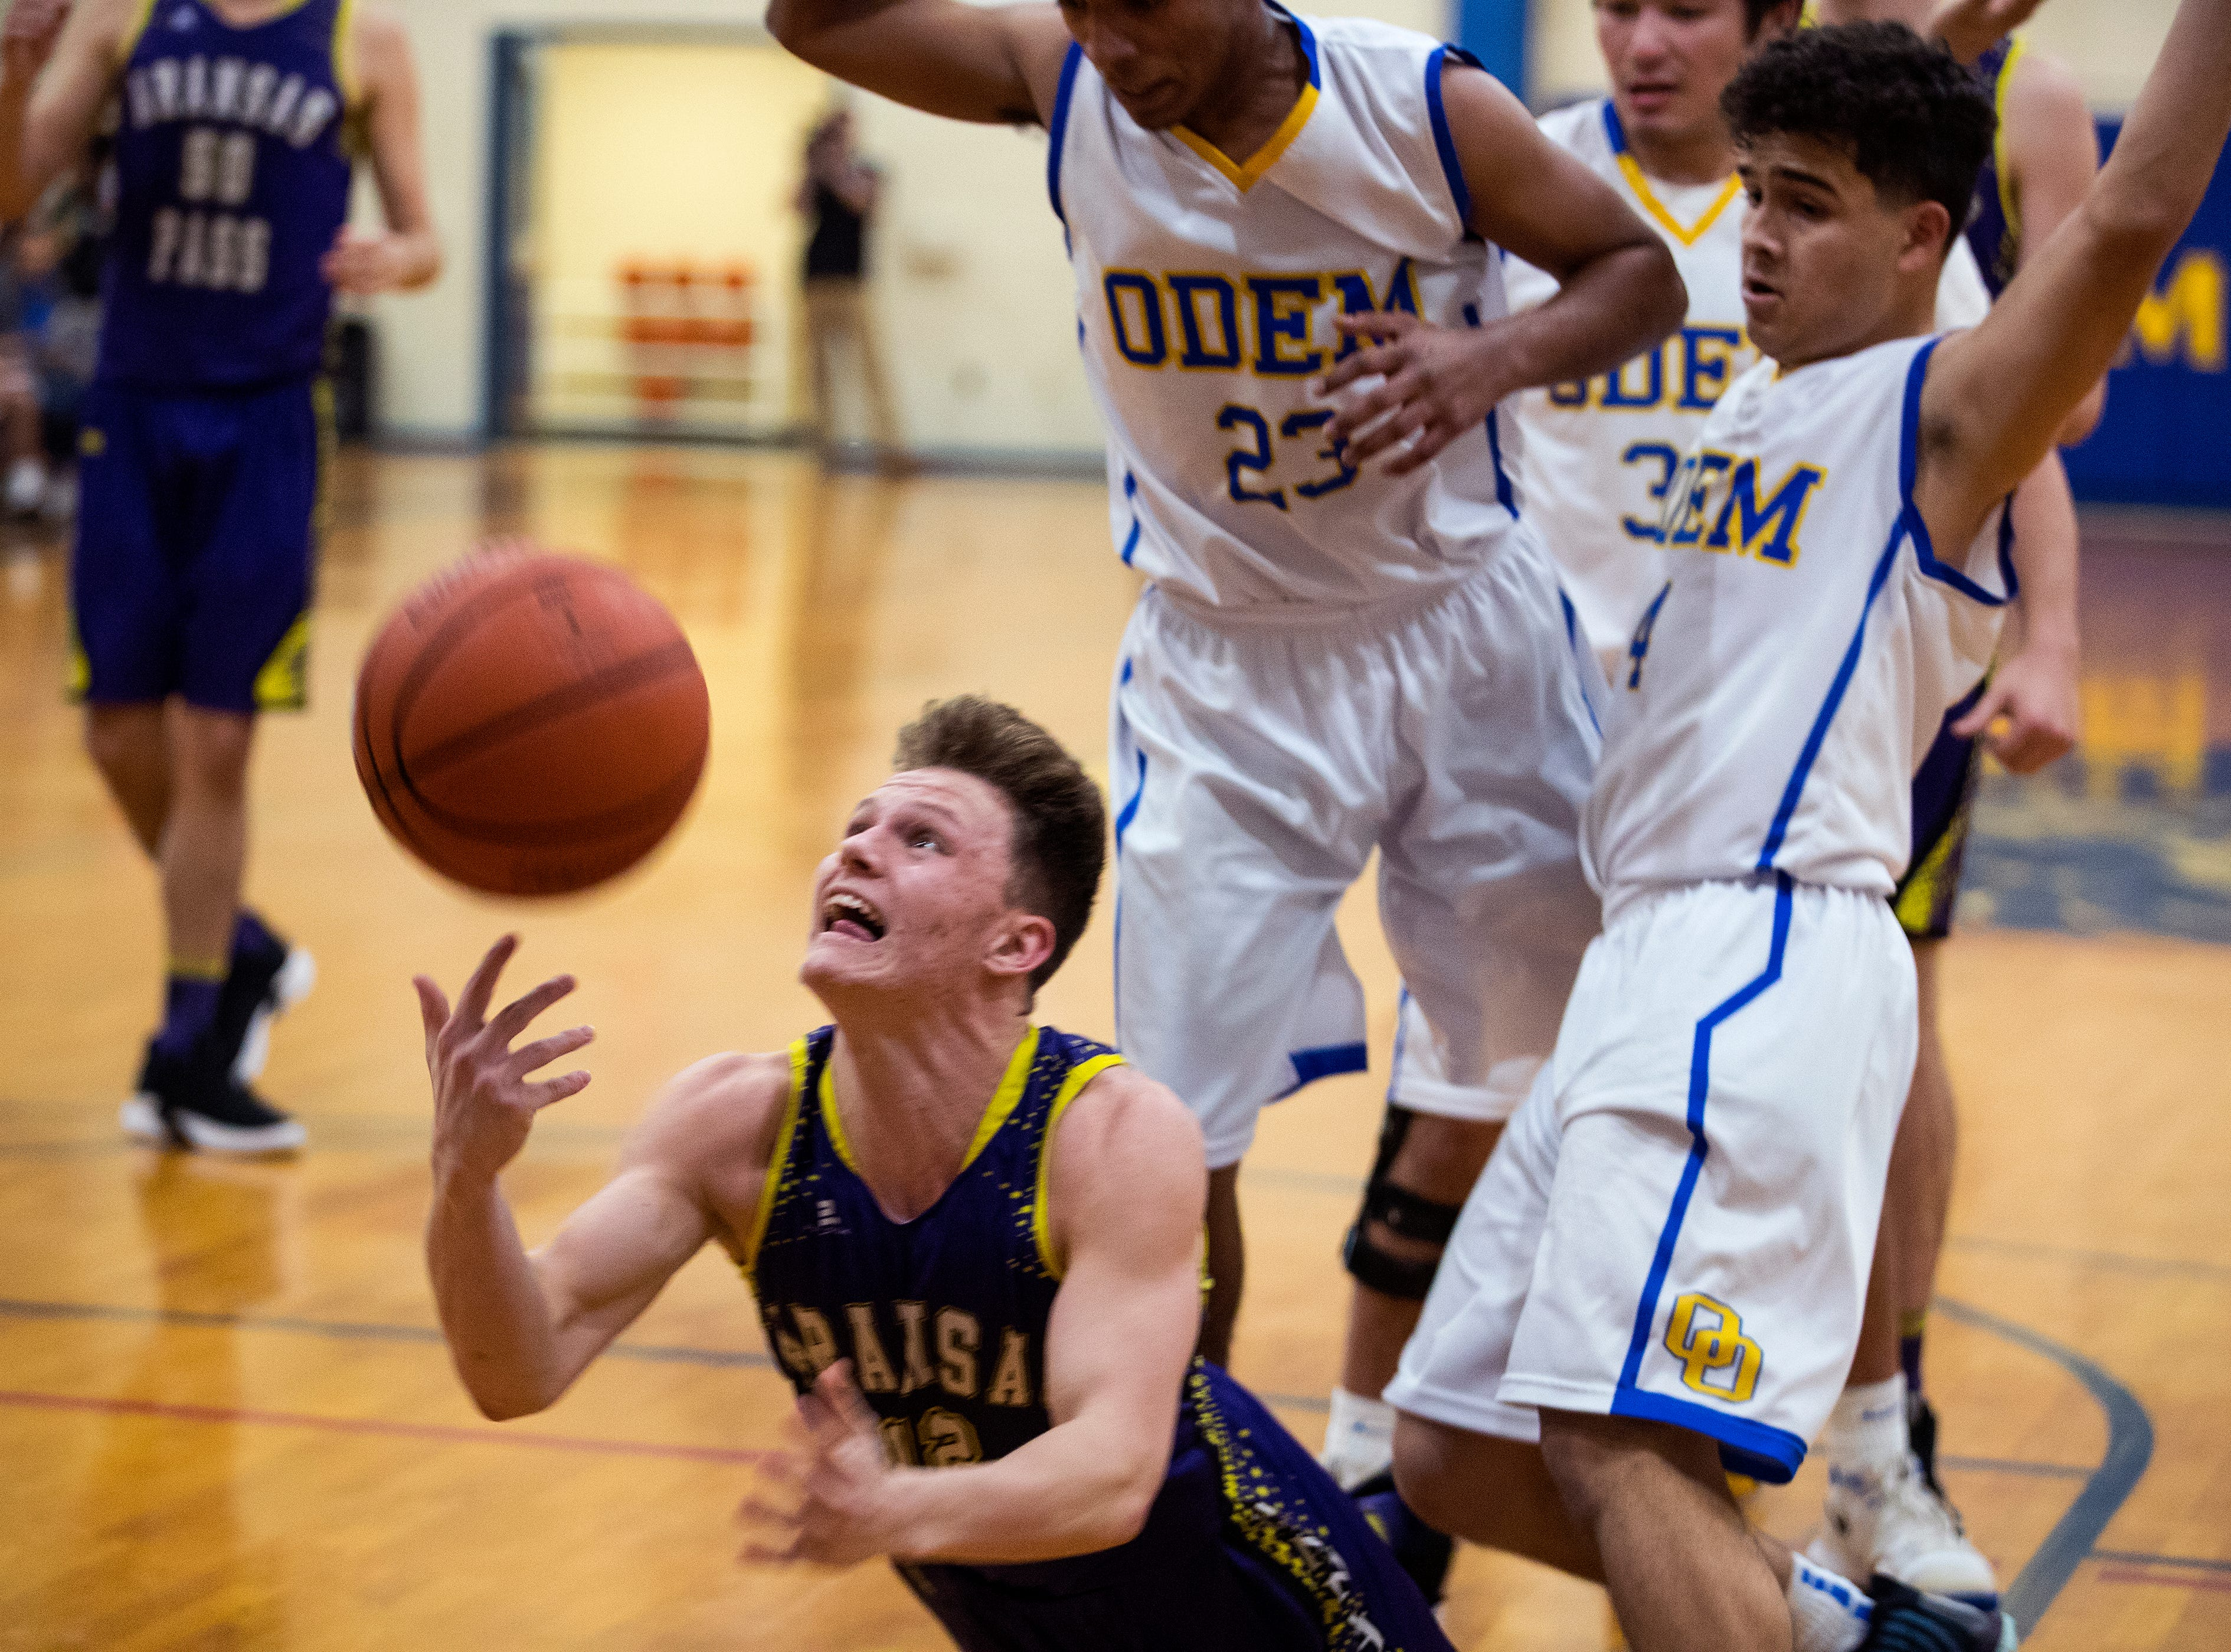 Odem beat Aransas Pass in a home basketball game 48-30 on Friday, January 18, 2019.